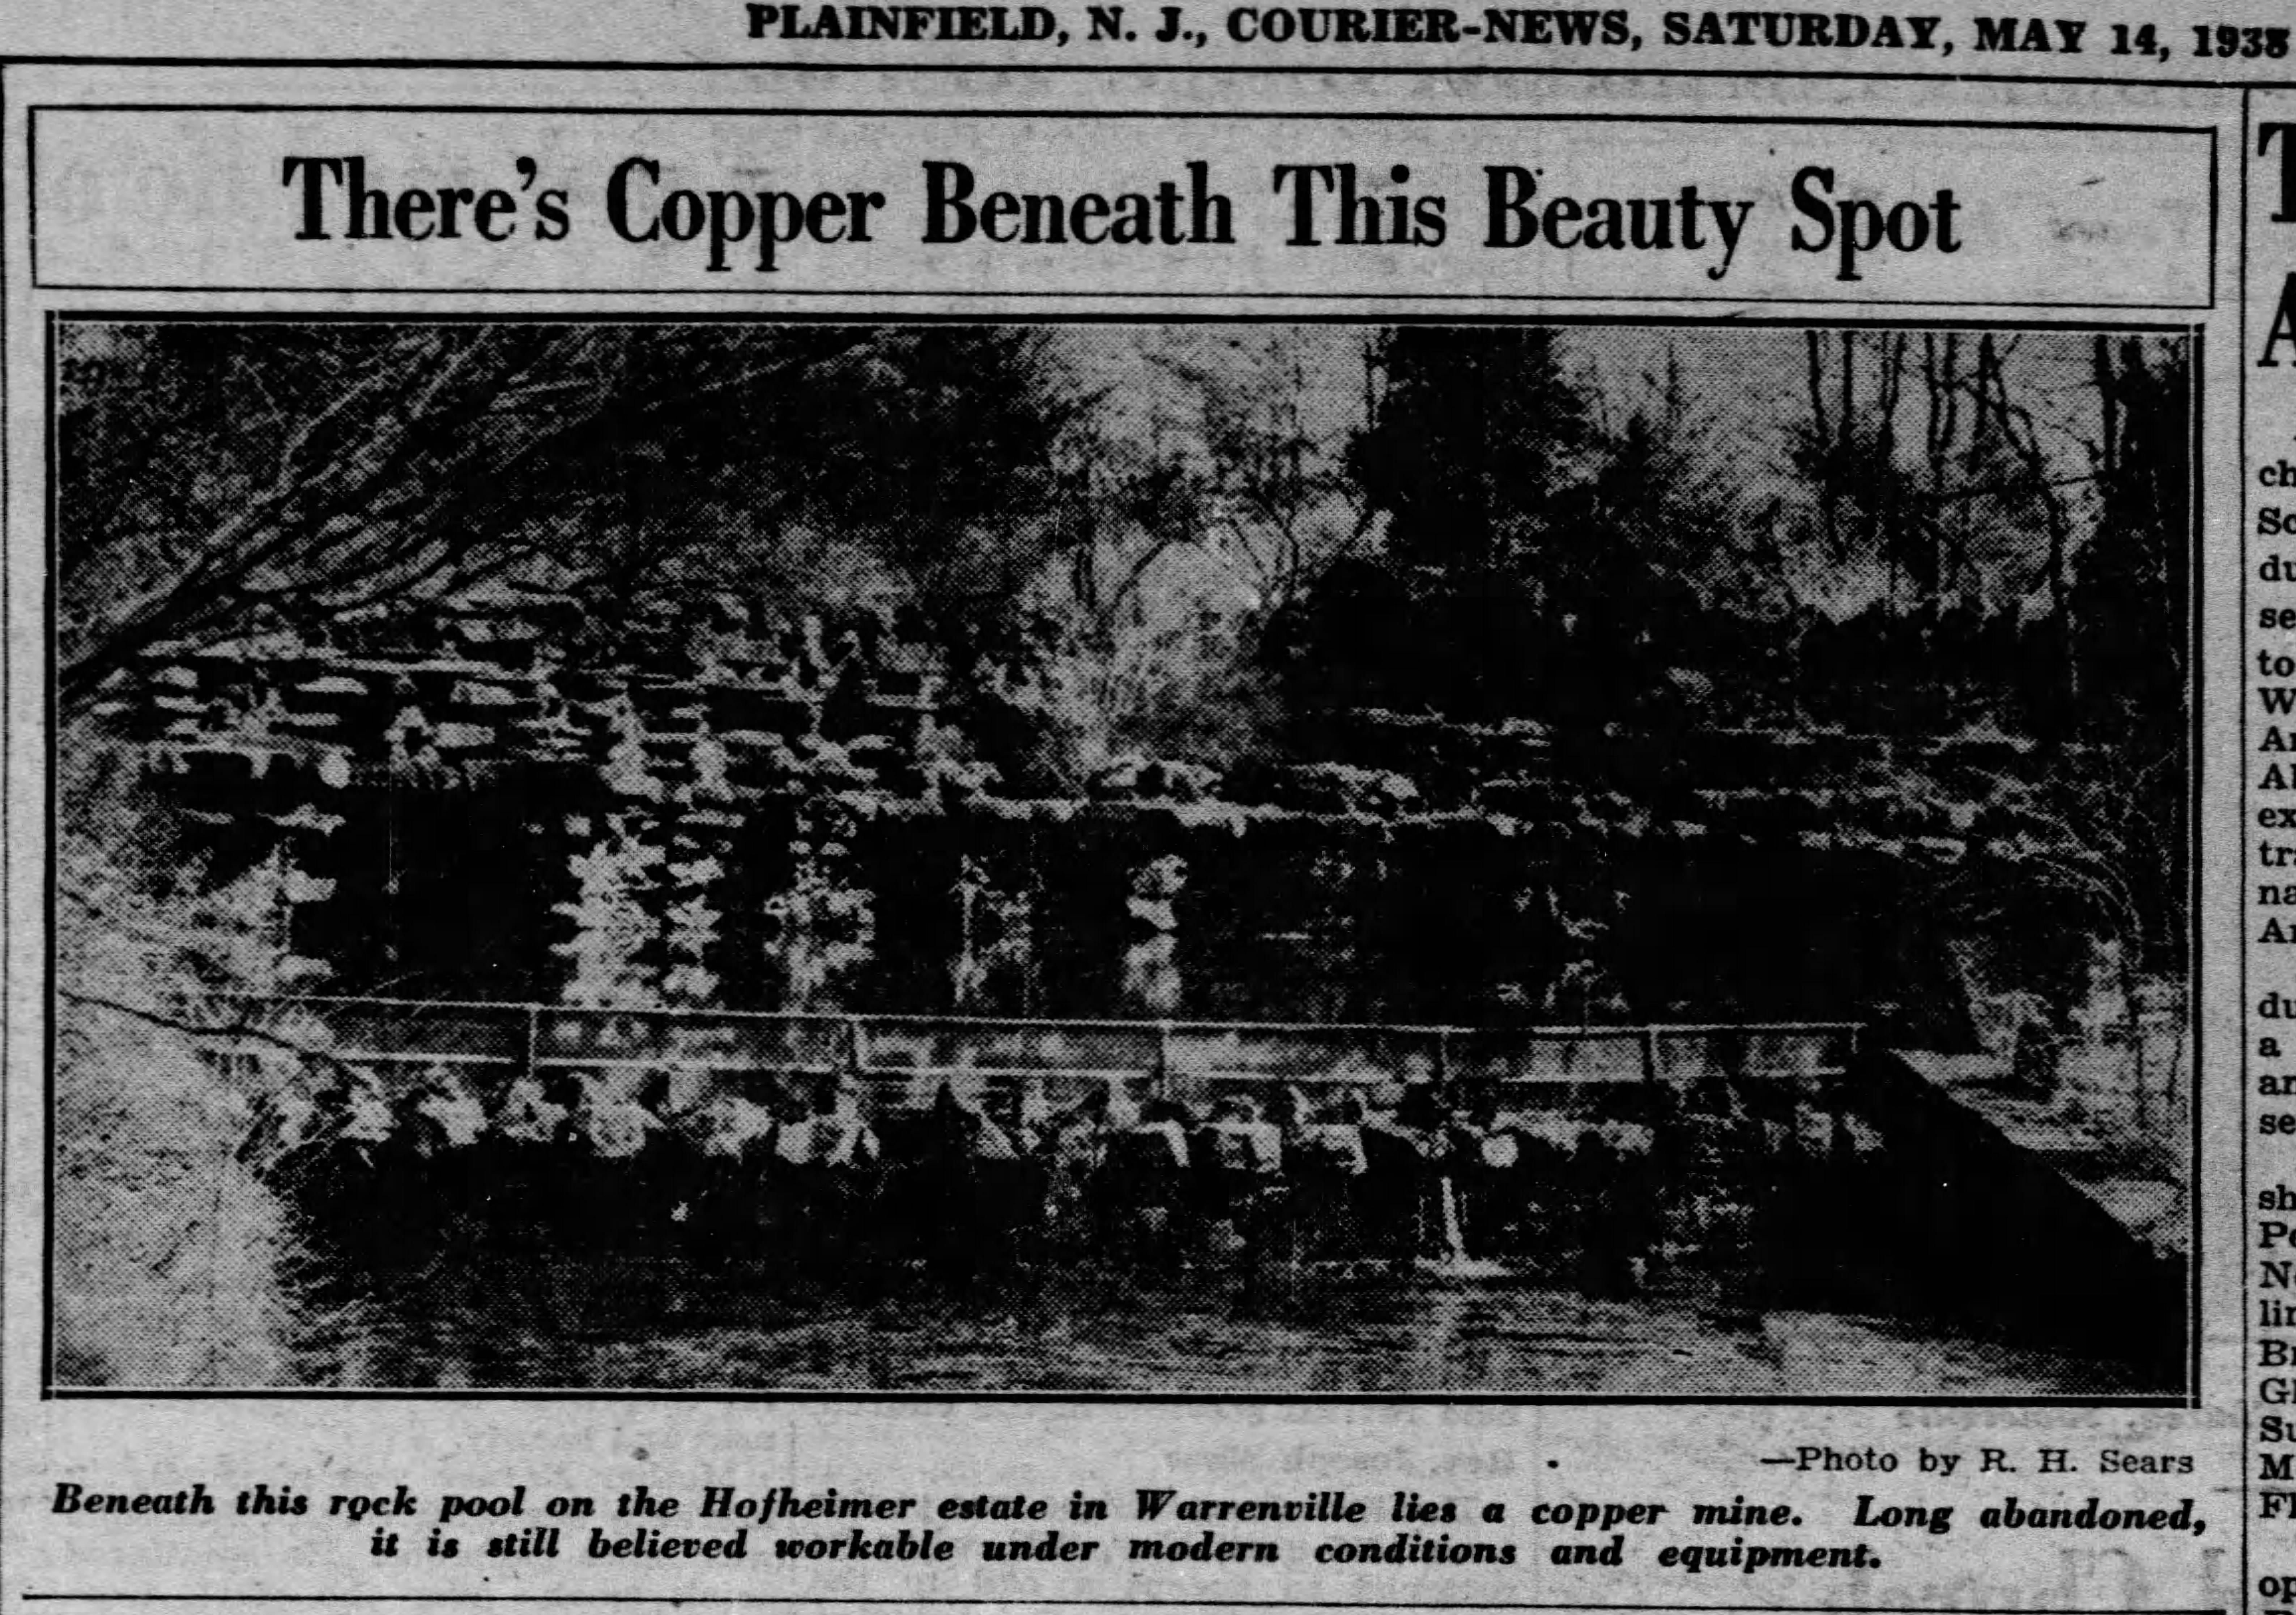 The HofHeimer Grotto from a 1938 newspaper clipping